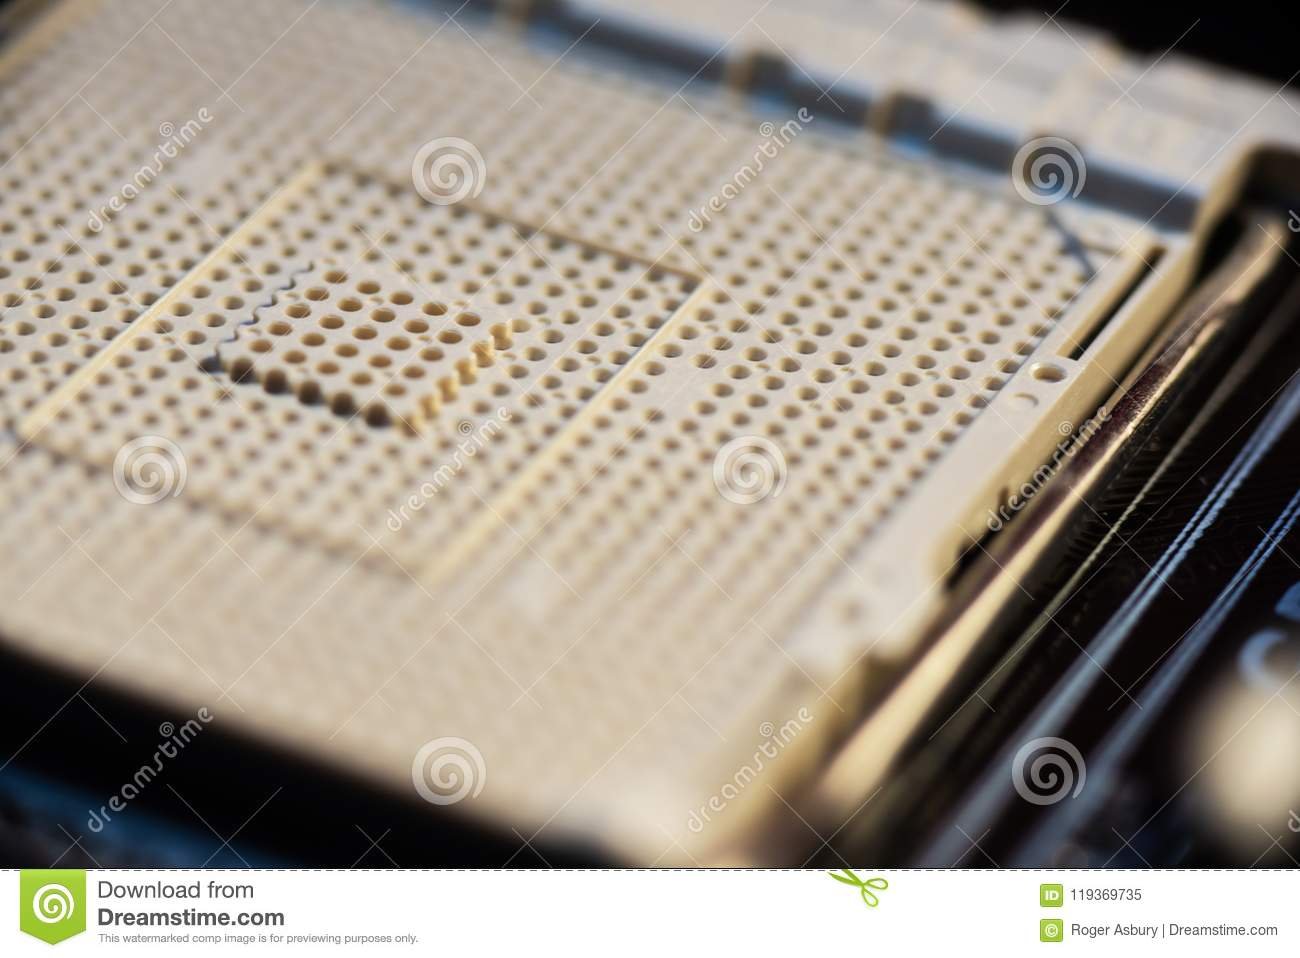 Zif Socket On Motherboard Stock Image Of Insertion 119369735 Connector And